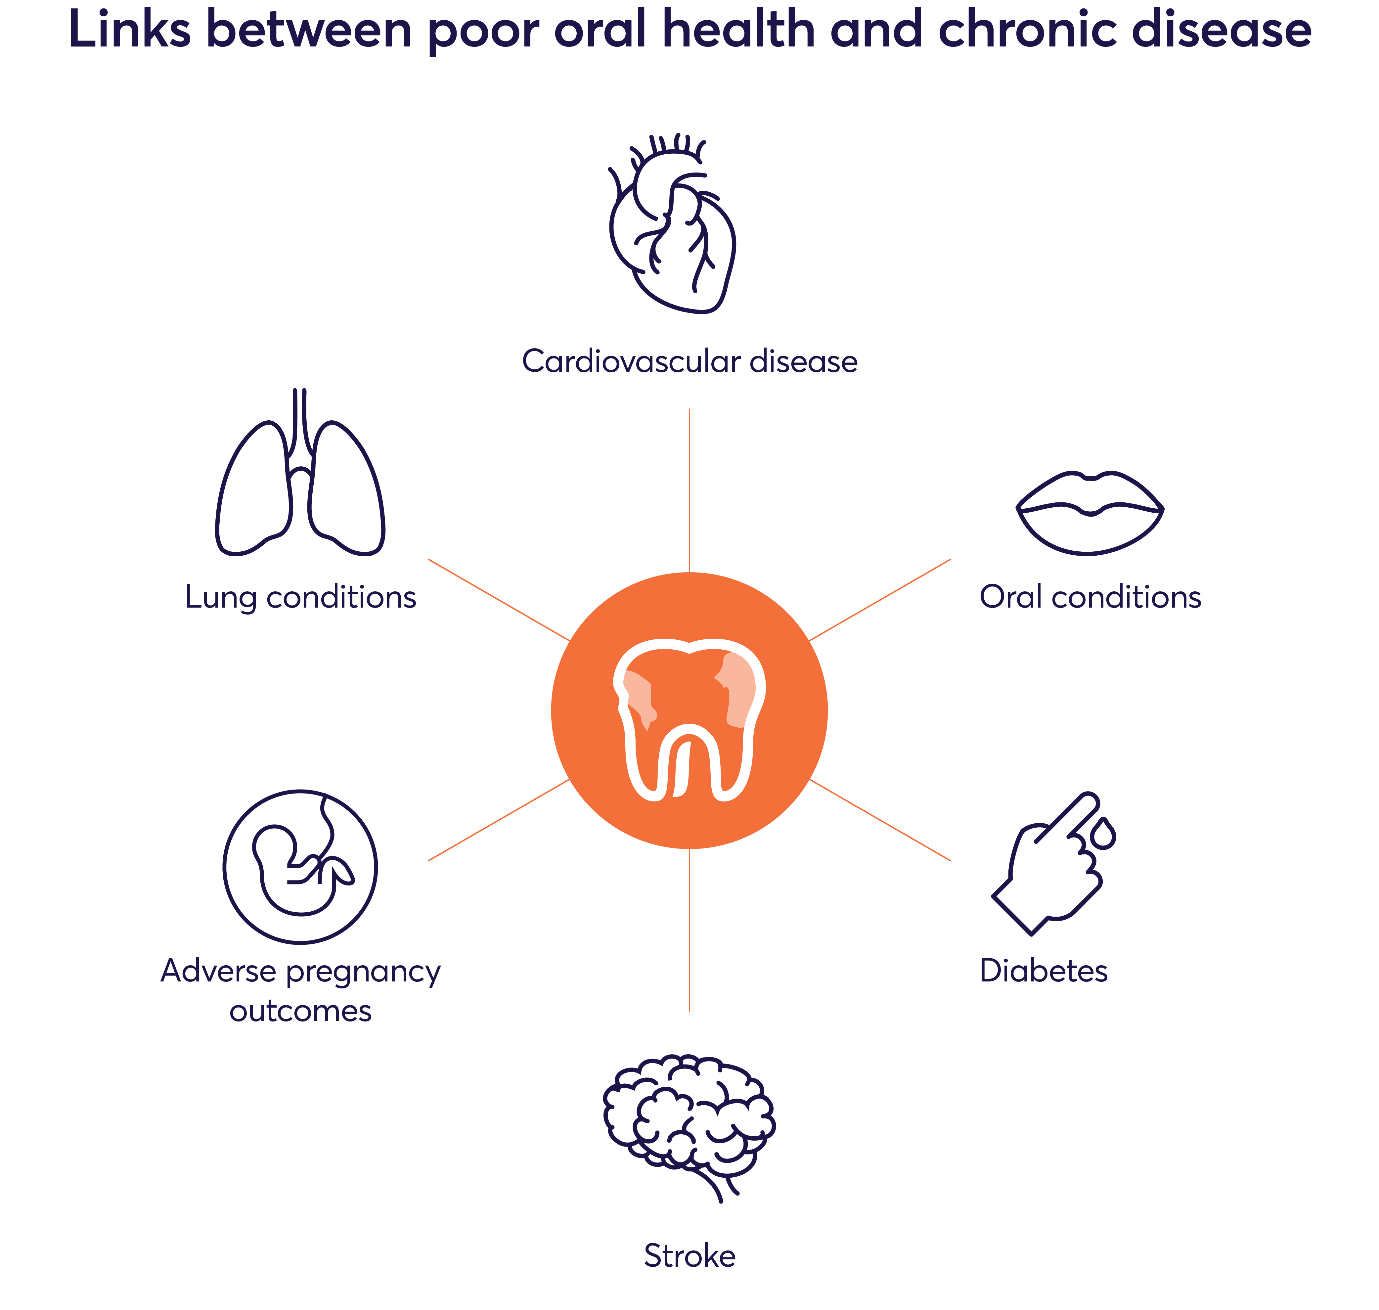 Poor-oral-health-and-chronic-disease